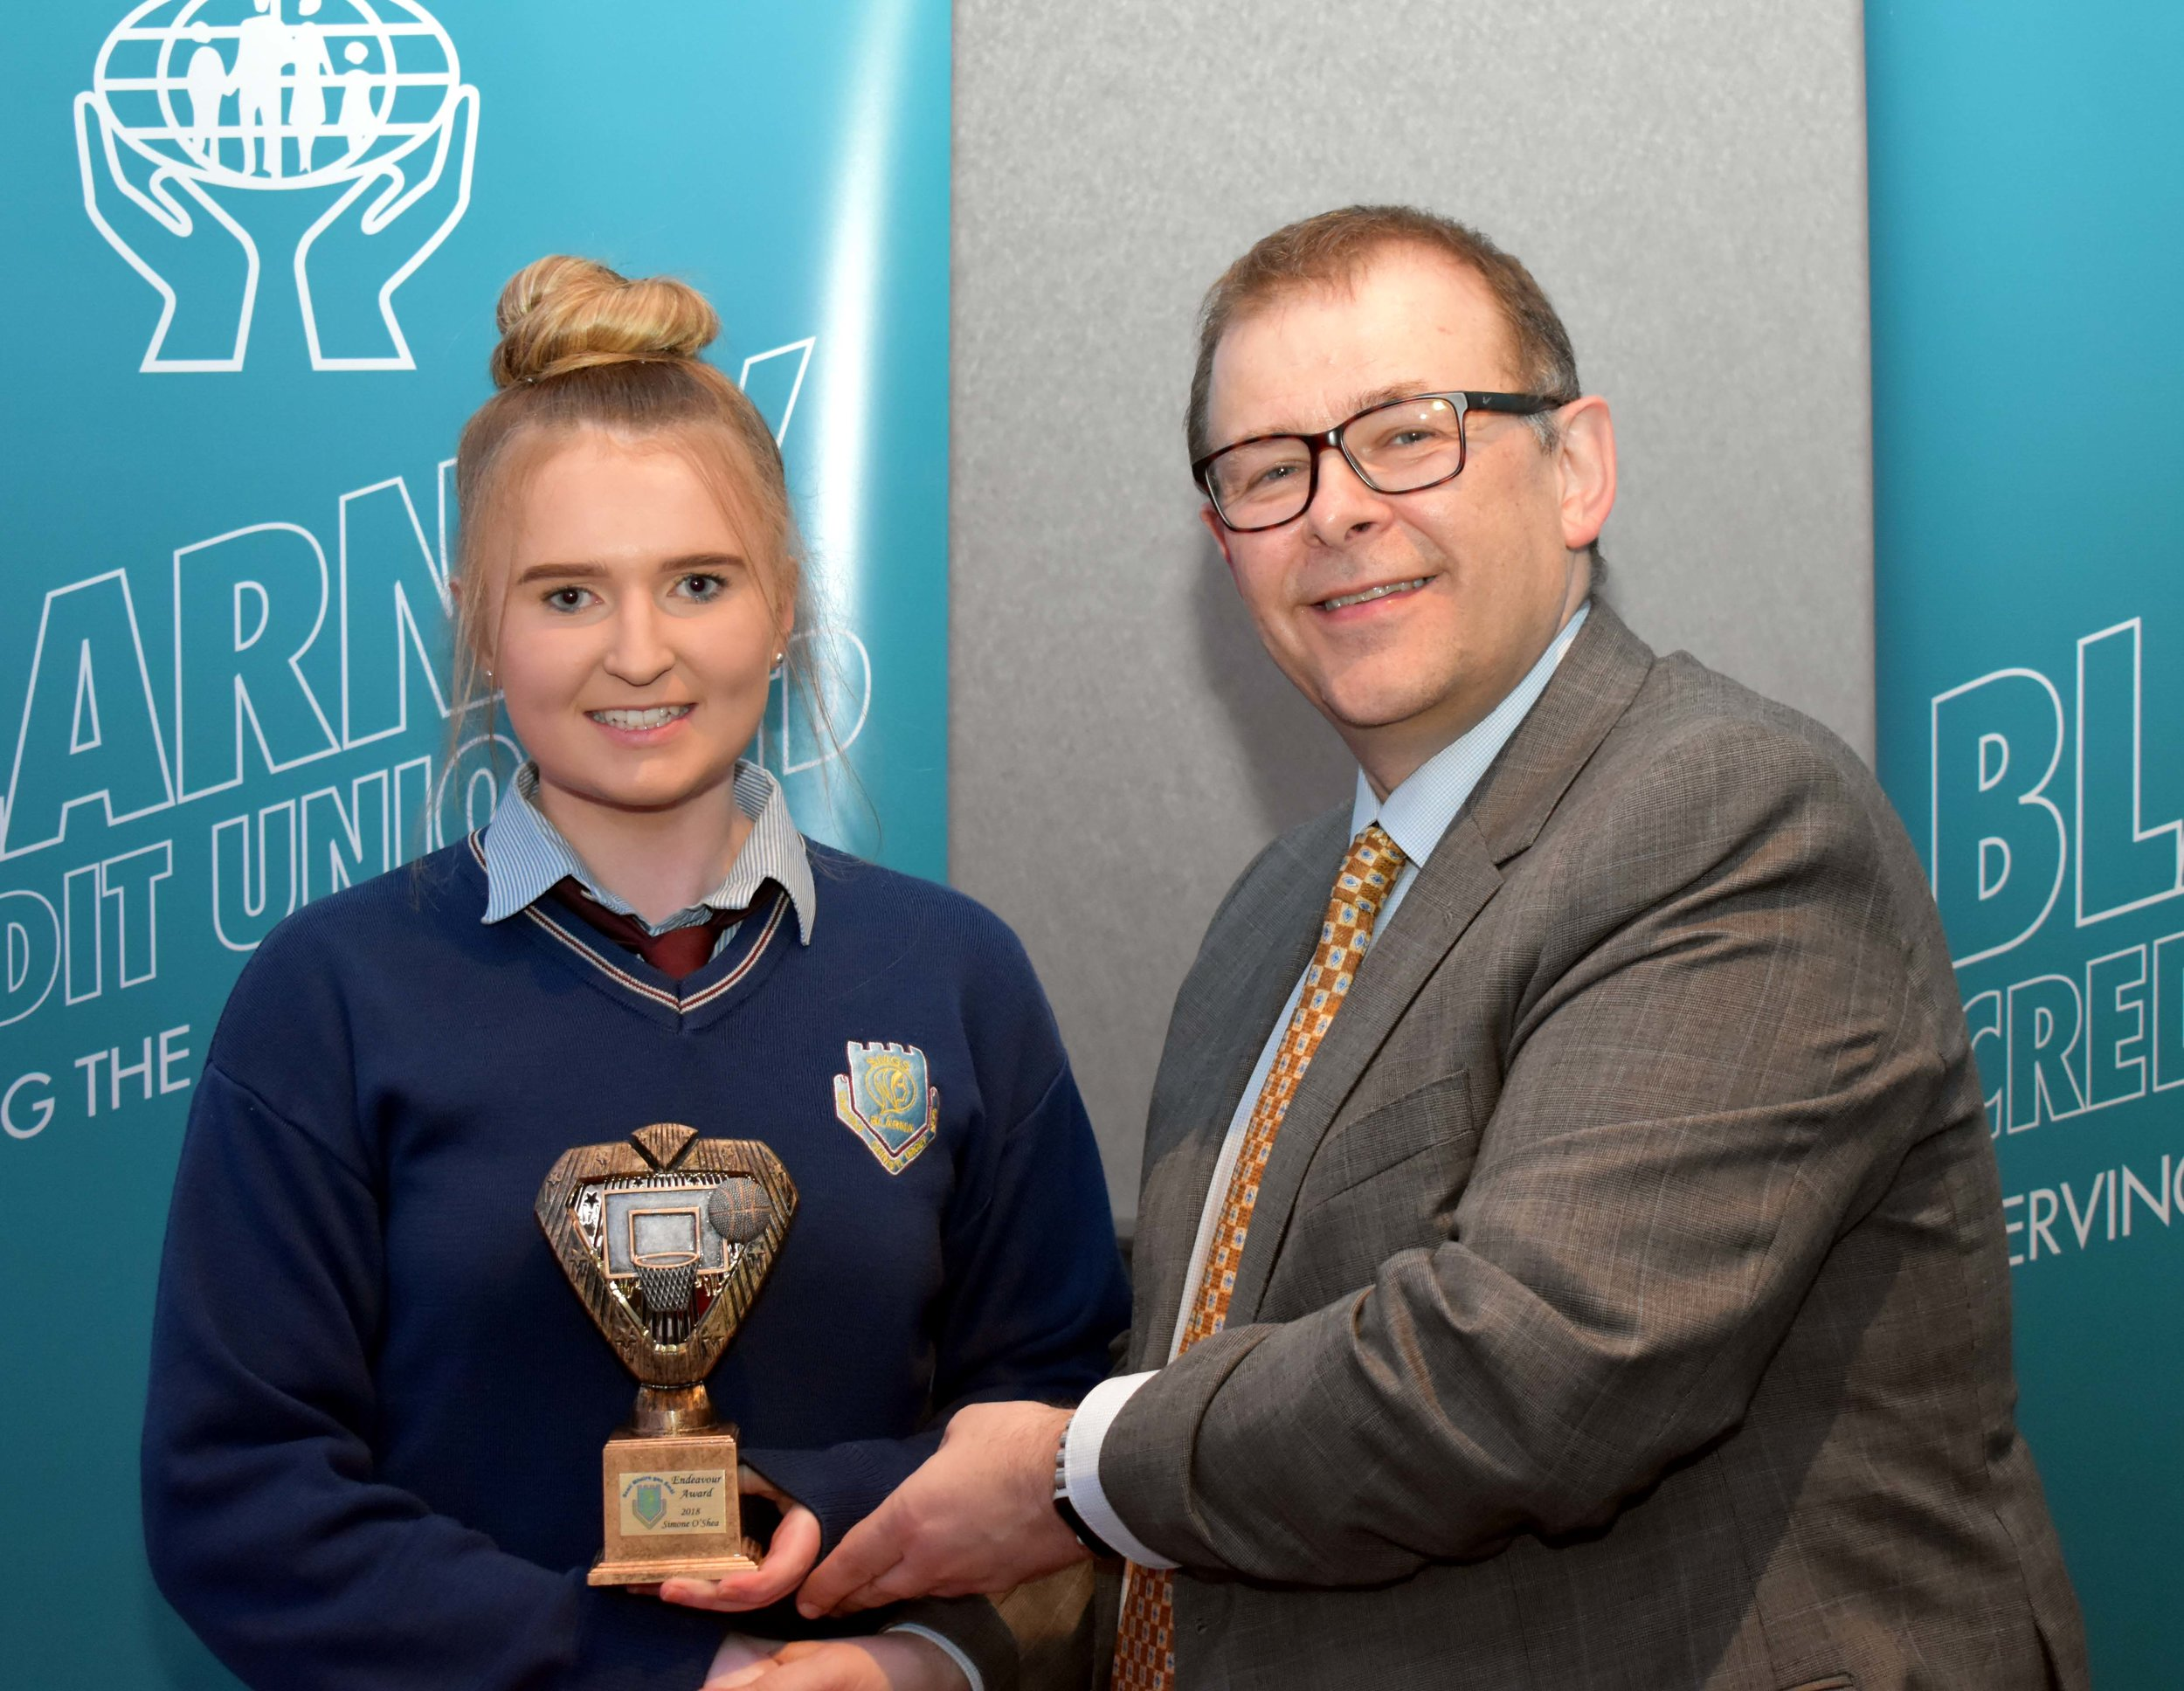 Simone O' Shea receiving an endeavour award for representing Ireland at the European 3x3 U18 Women's Basketball Championships held in France. (Pictured with Mr. Mark McGloughlin - BOM and Blarney Credit Union)